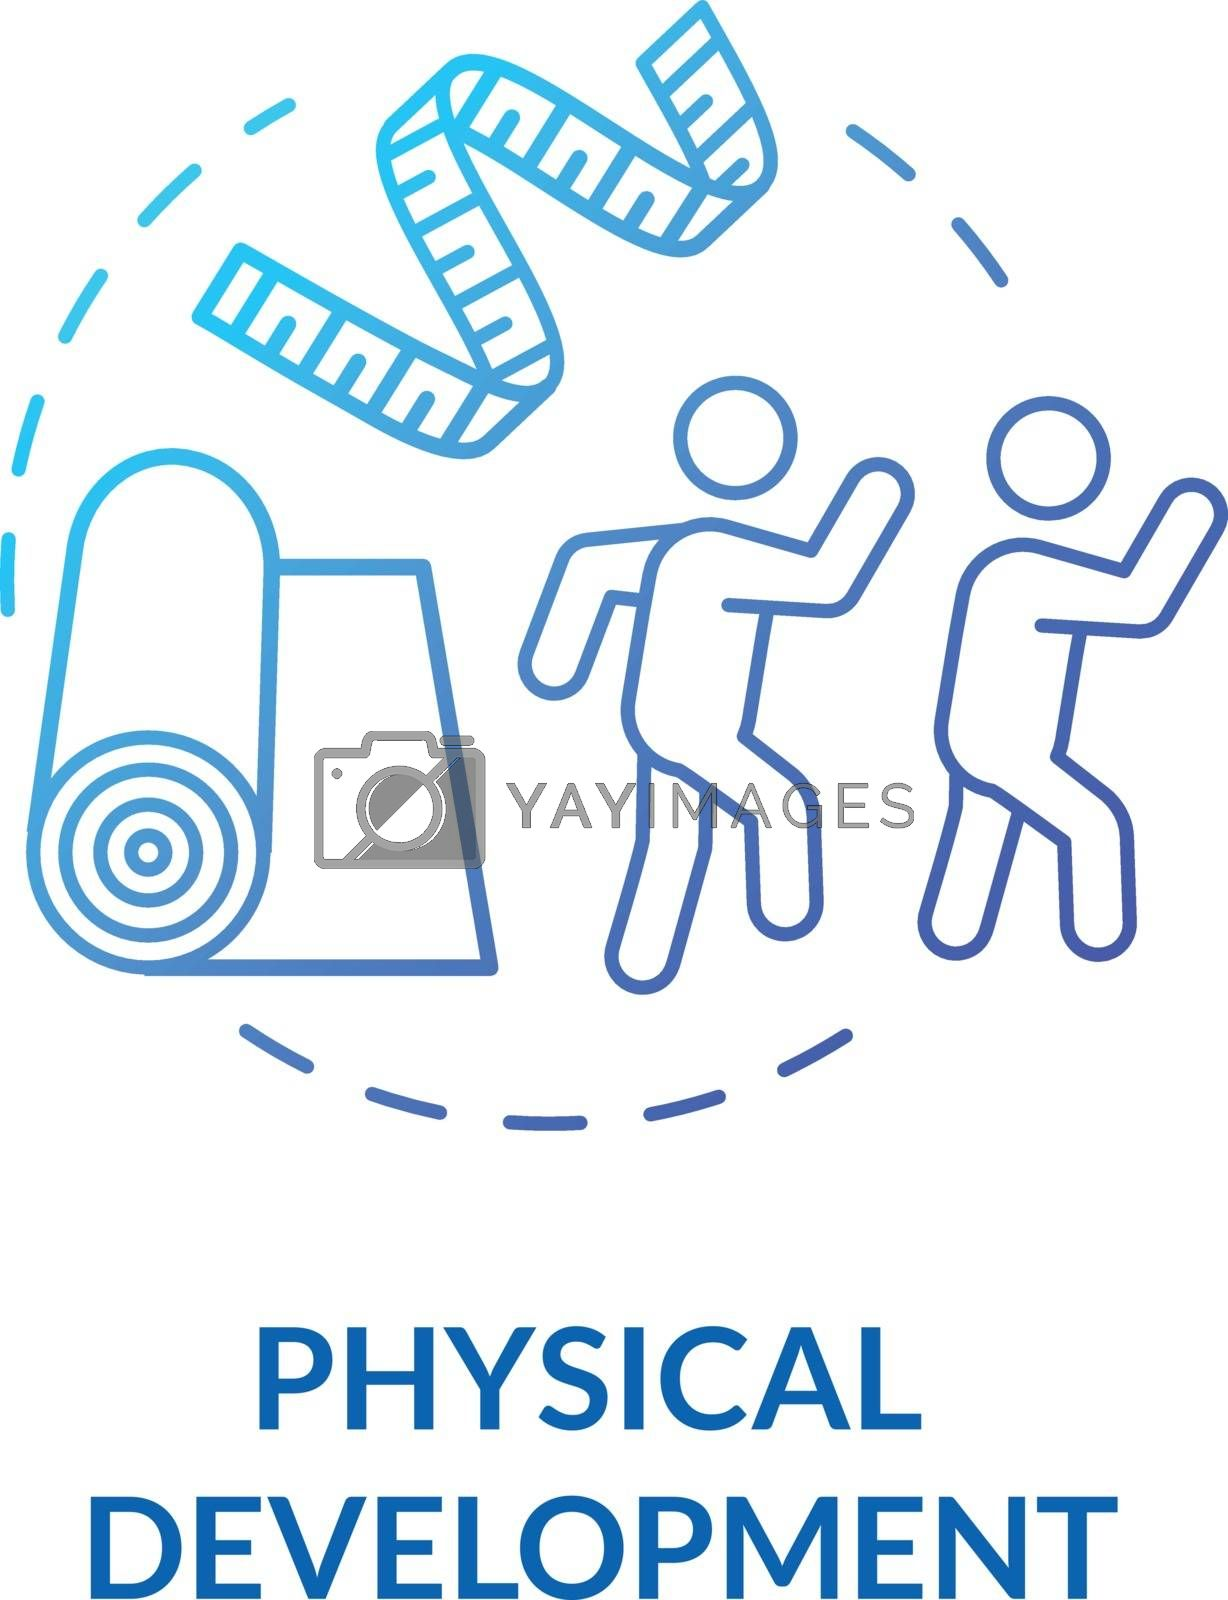 Toddlers physical development concept icon. Early childhood. Preschoolers daycare center. Children playing activities idea thin line illustration. Vector isolated outline RGB color drawing